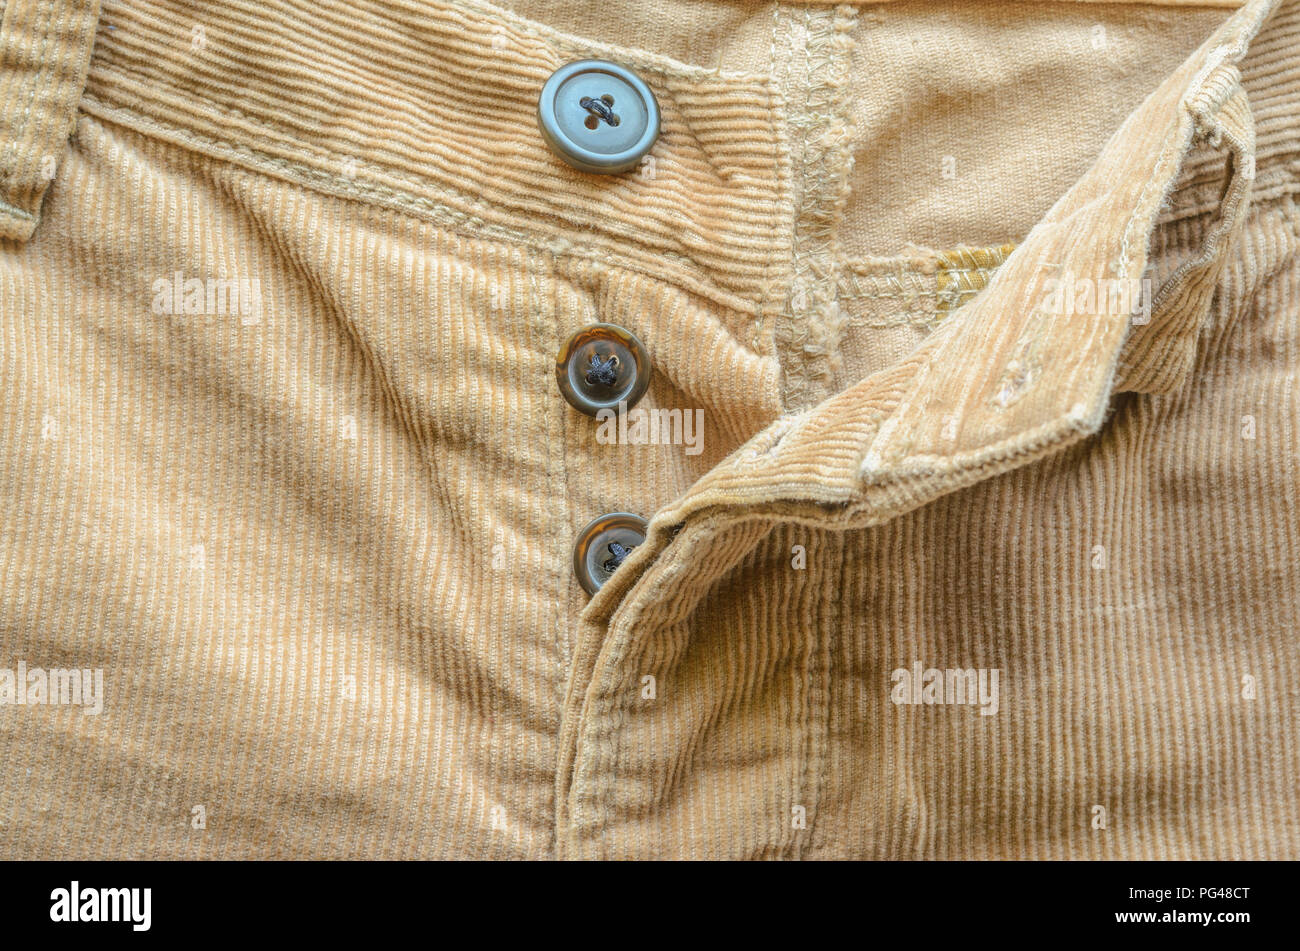 Textile Fabric Of Corduroy Pants As Background Pocket In Pants Closeup Texture Of Beige Velvet Clothes Stock Photo Alamy